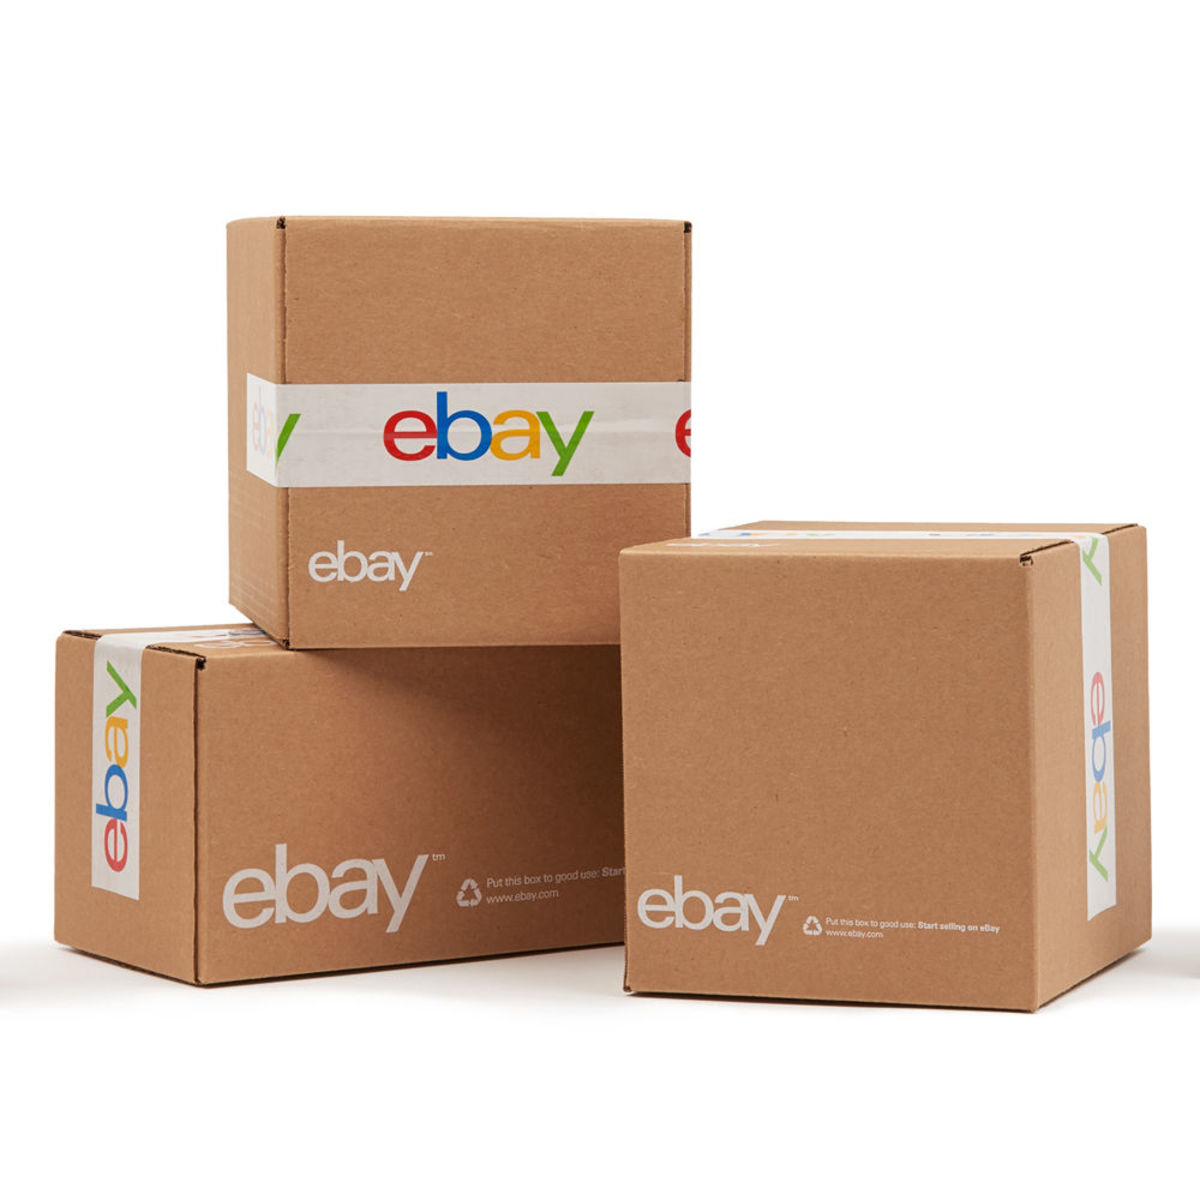 best-shipping-practices-for-ebay-sellers-to-save-money